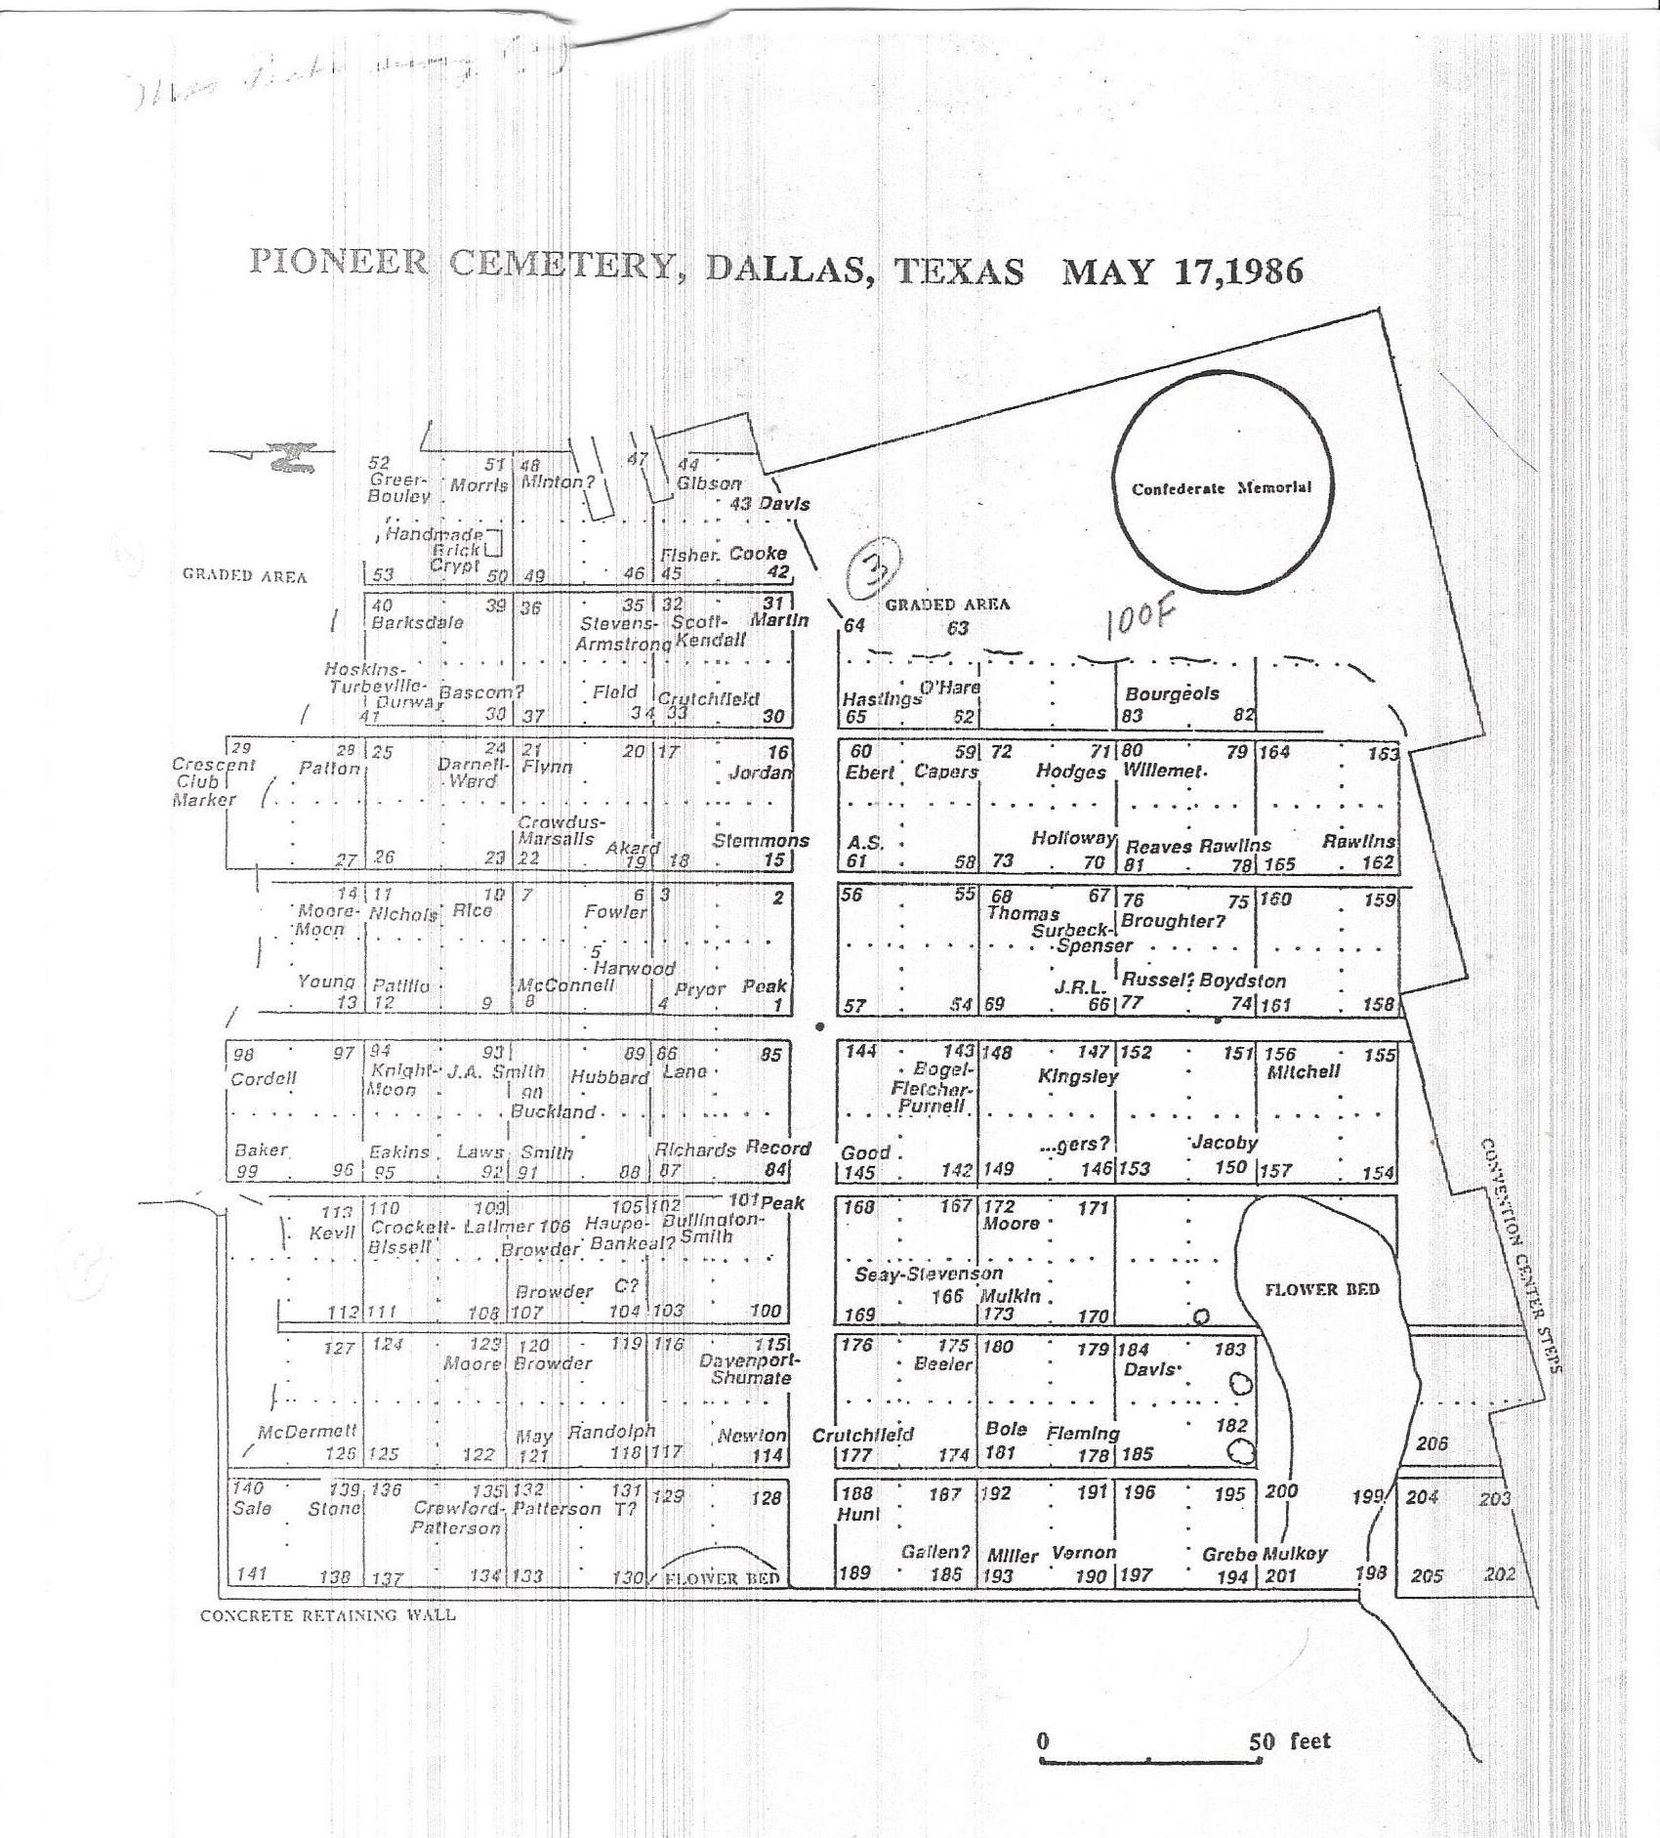 From the city's website, the last time the cemetery appears to have been mapped